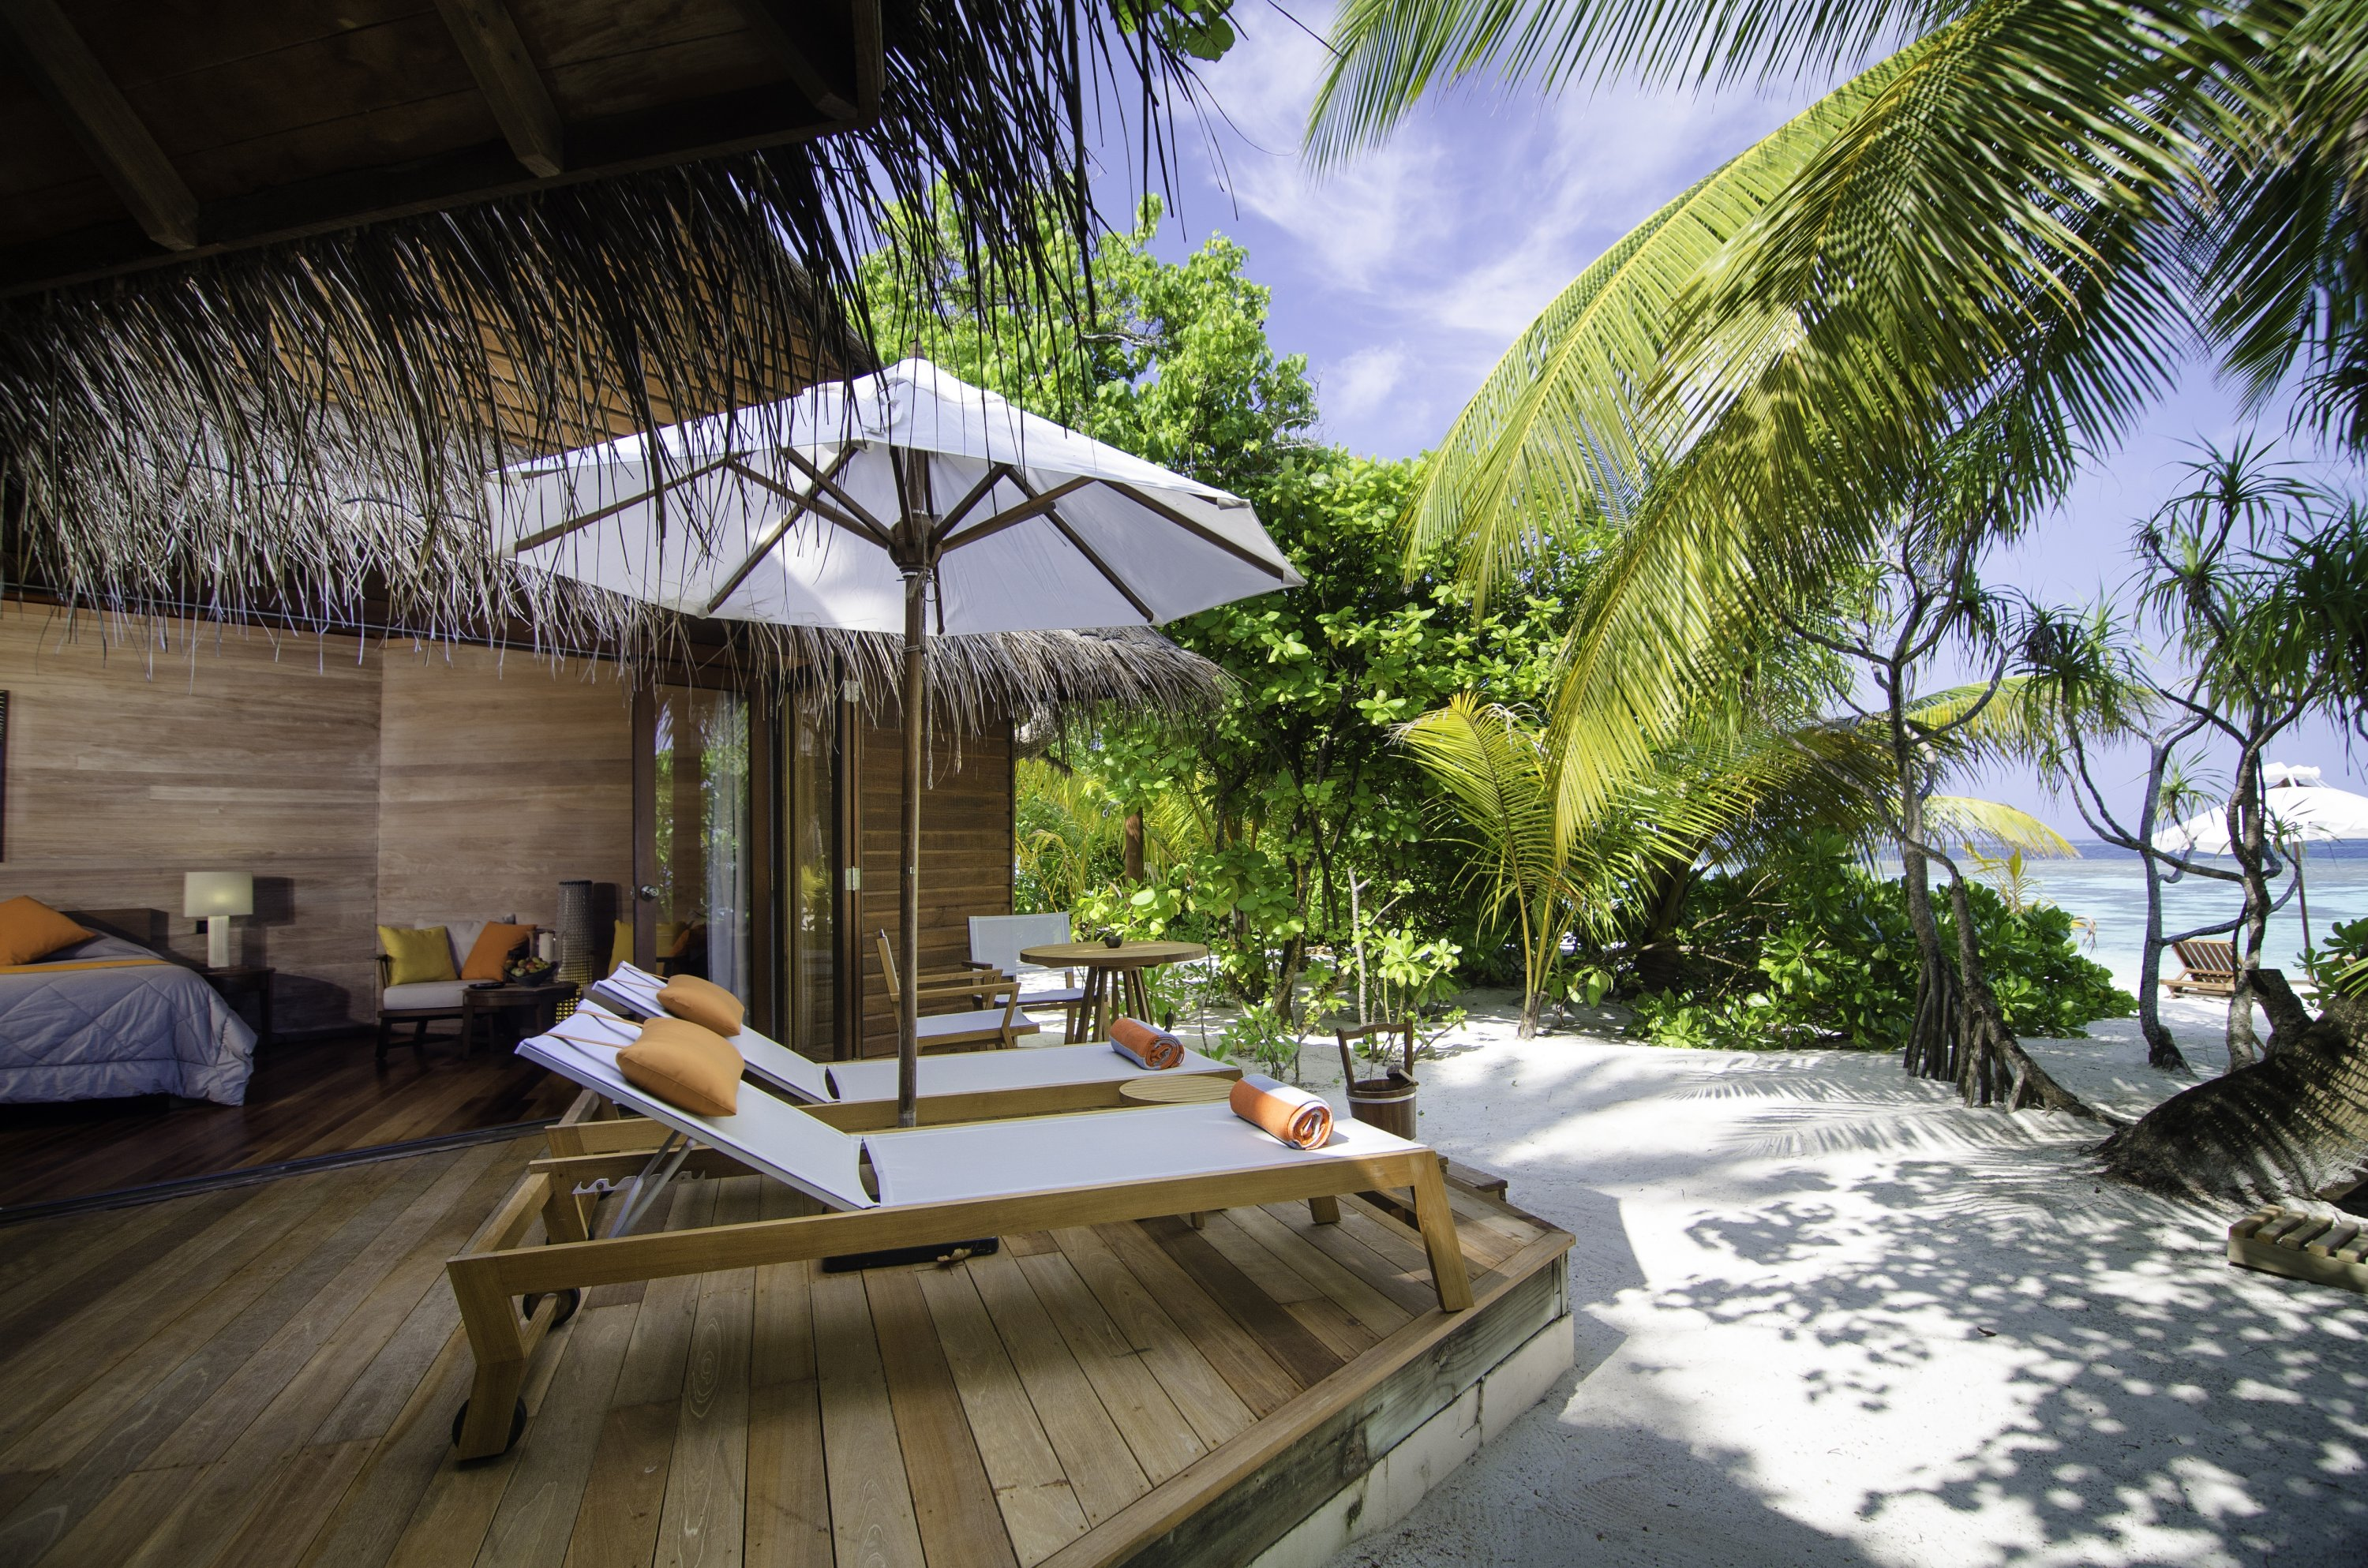 Tucked between palm trees, Mirihi's beach villas offer privacy while being just a few steps away from the sea. (Photo courtesy of Mirihi Maldives)